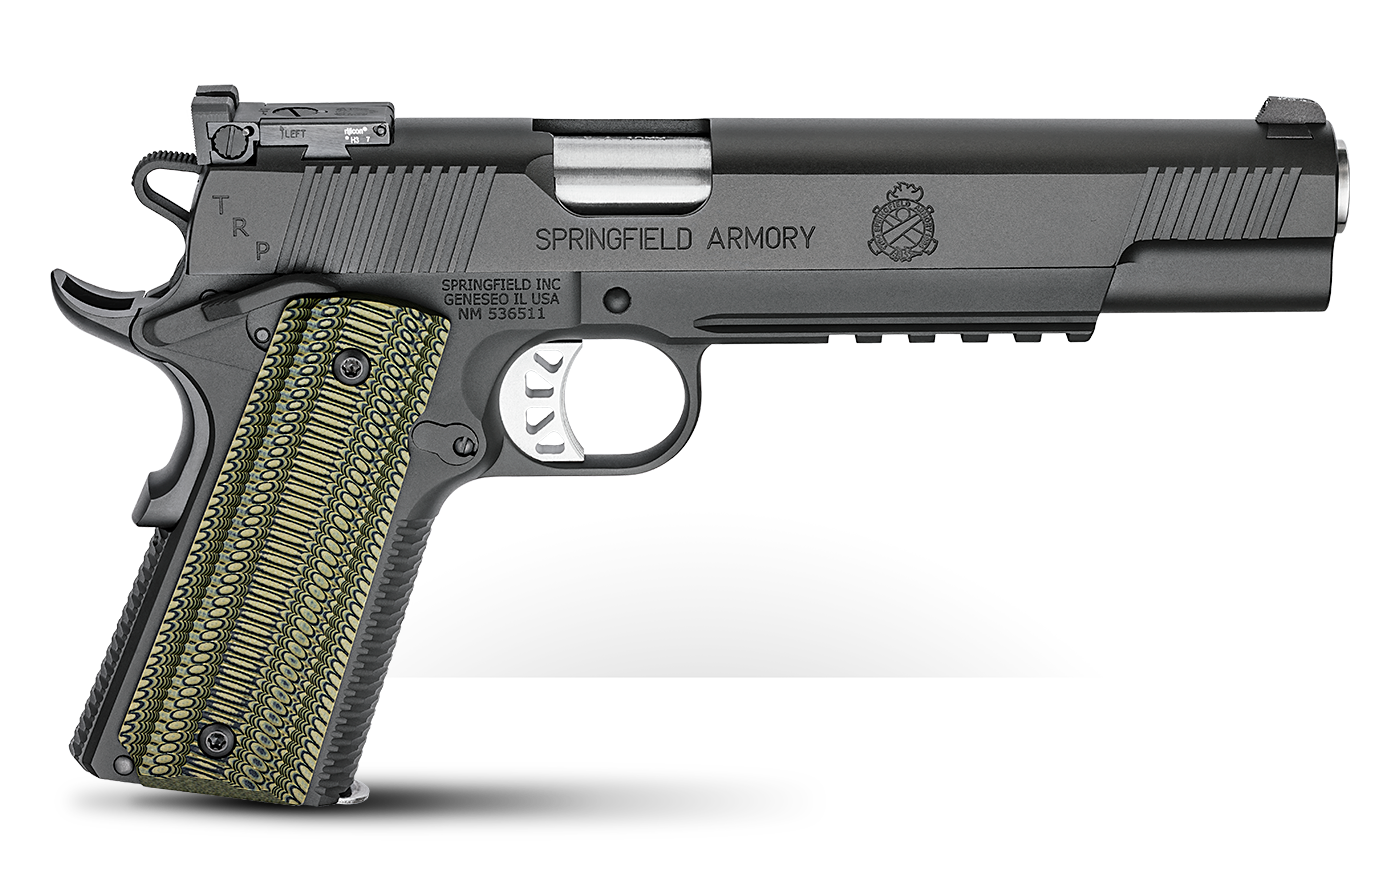 Springfield's NEWEST 1911 now available in 10mm